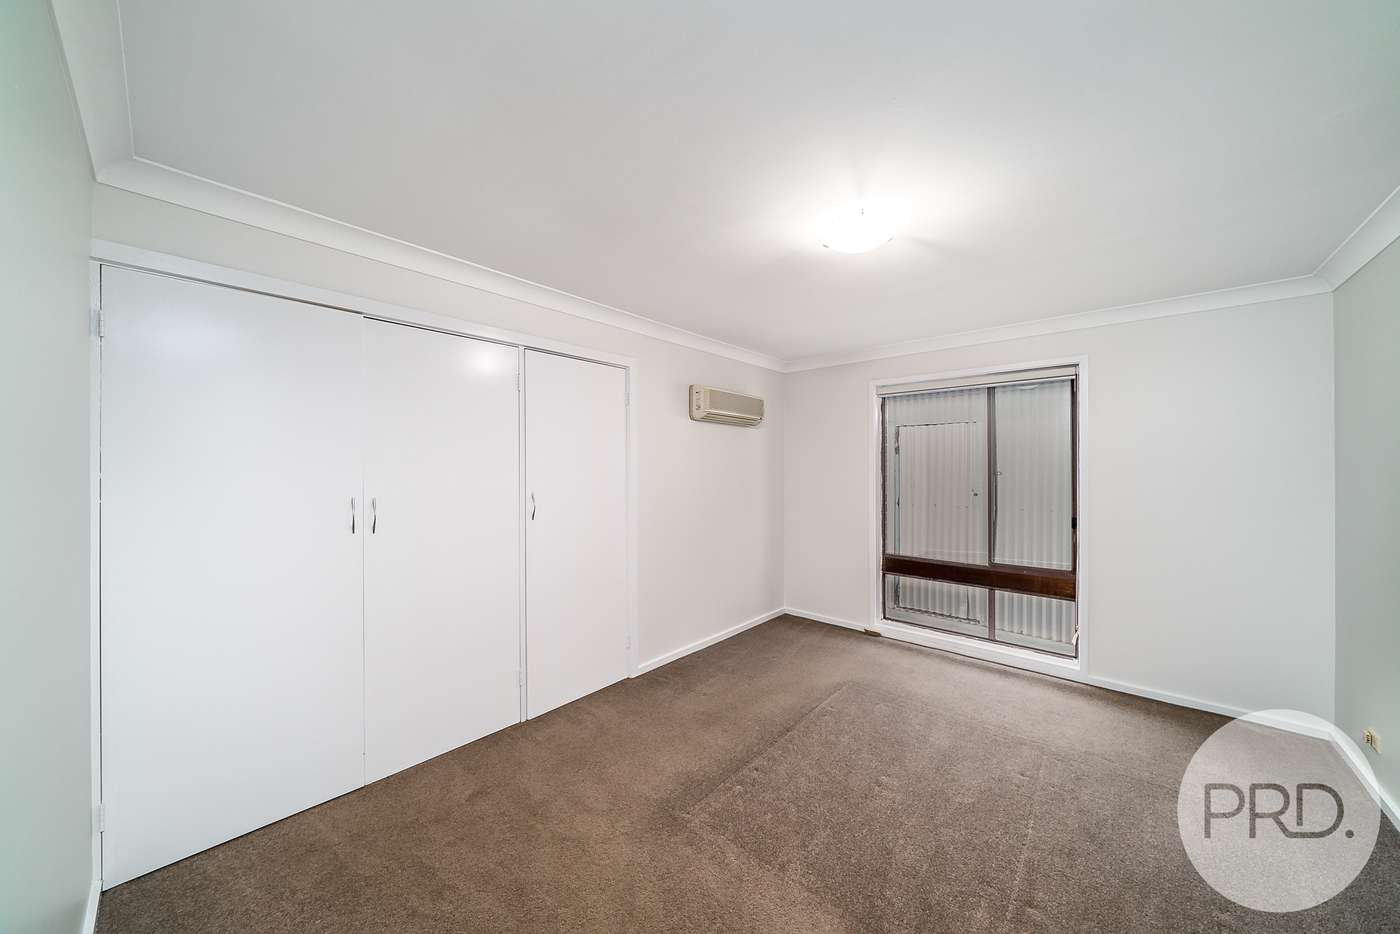 Fifth view of Homely house listing, 12 Vestey Street, Wagga Wagga NSW 2650